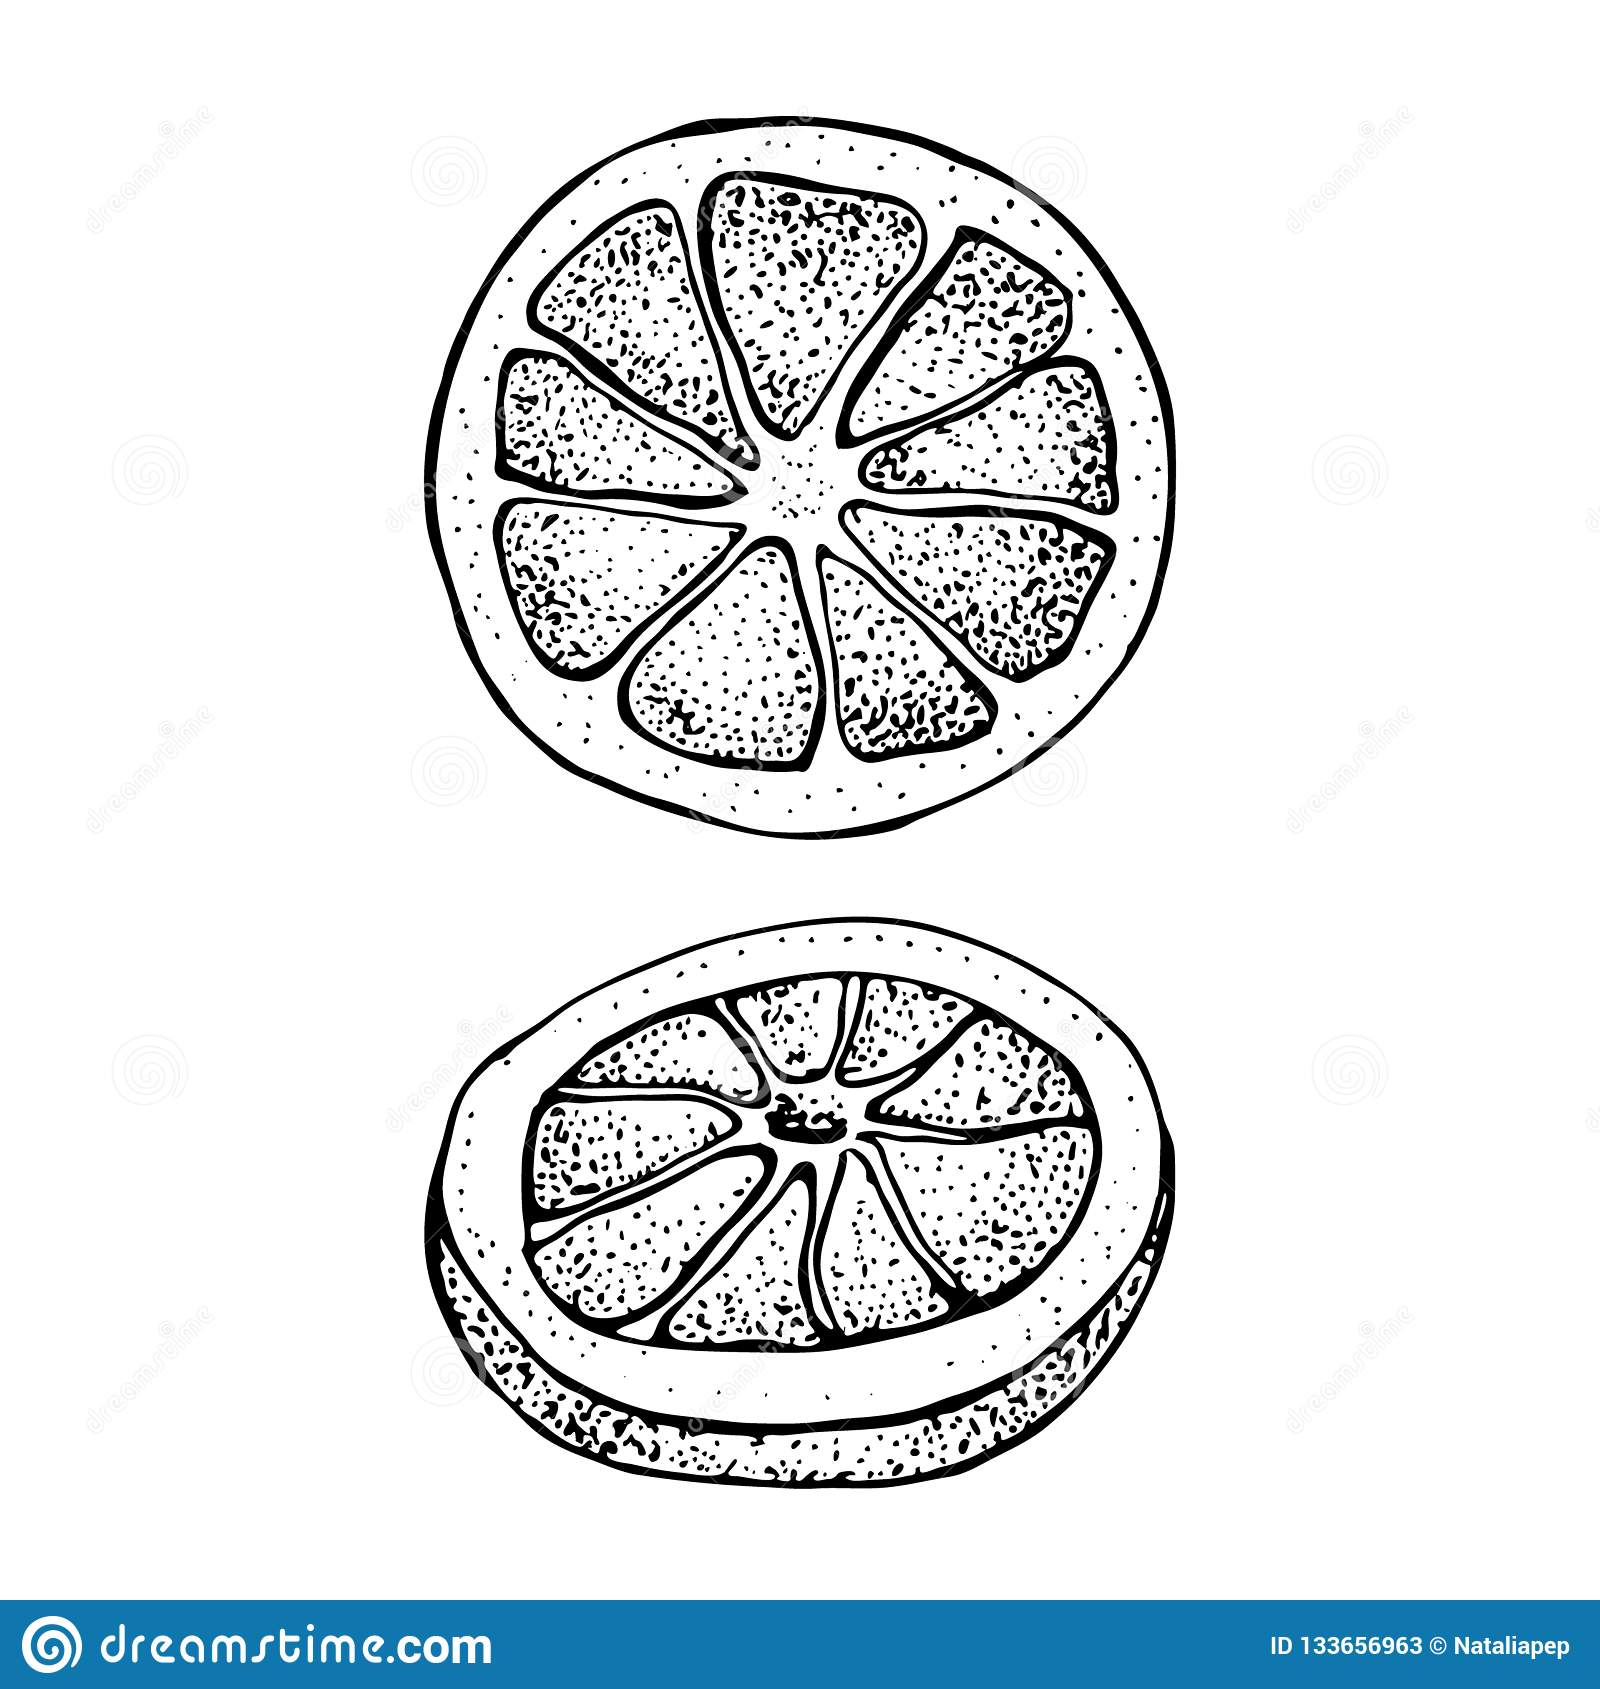 Vector illustration with ink hand drawn citrus fruit, slices pieces sketch. Mandarin orange, tangerine, lime isolated o